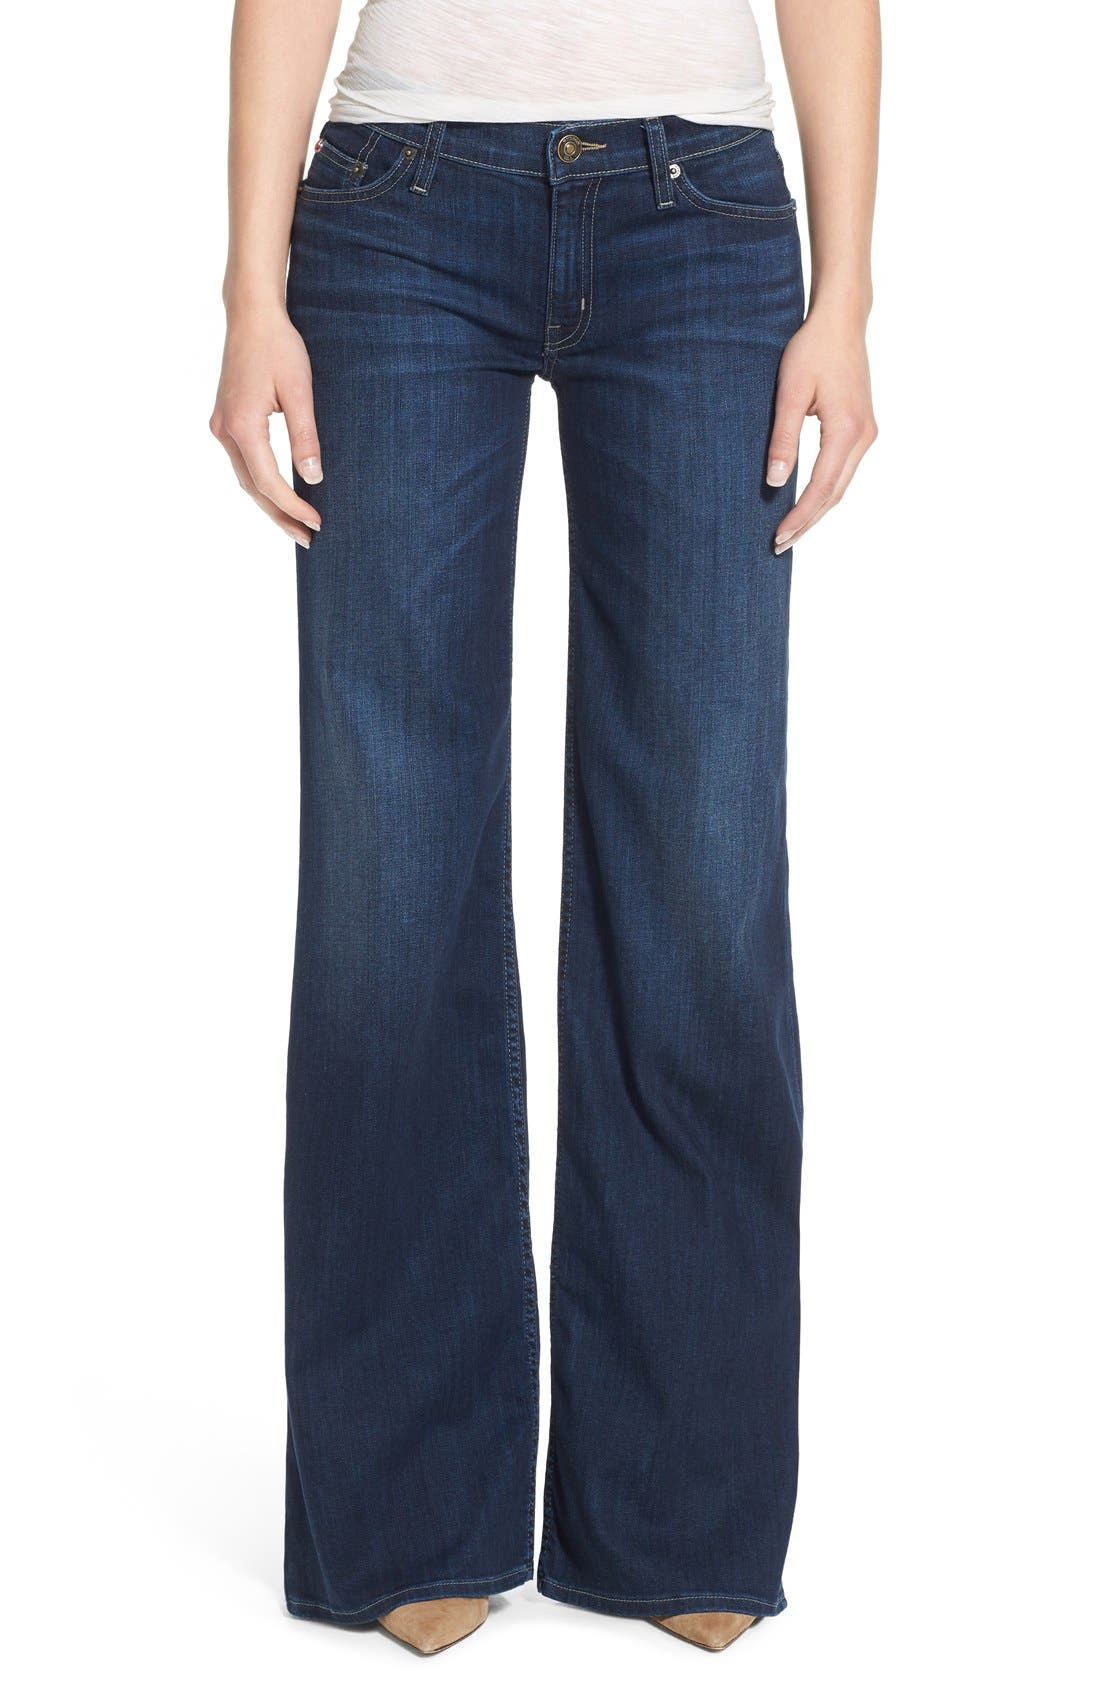 Alternate Image 1 Selected - Hudson Jeans Piper Wide Leg Jeans (Thruway)